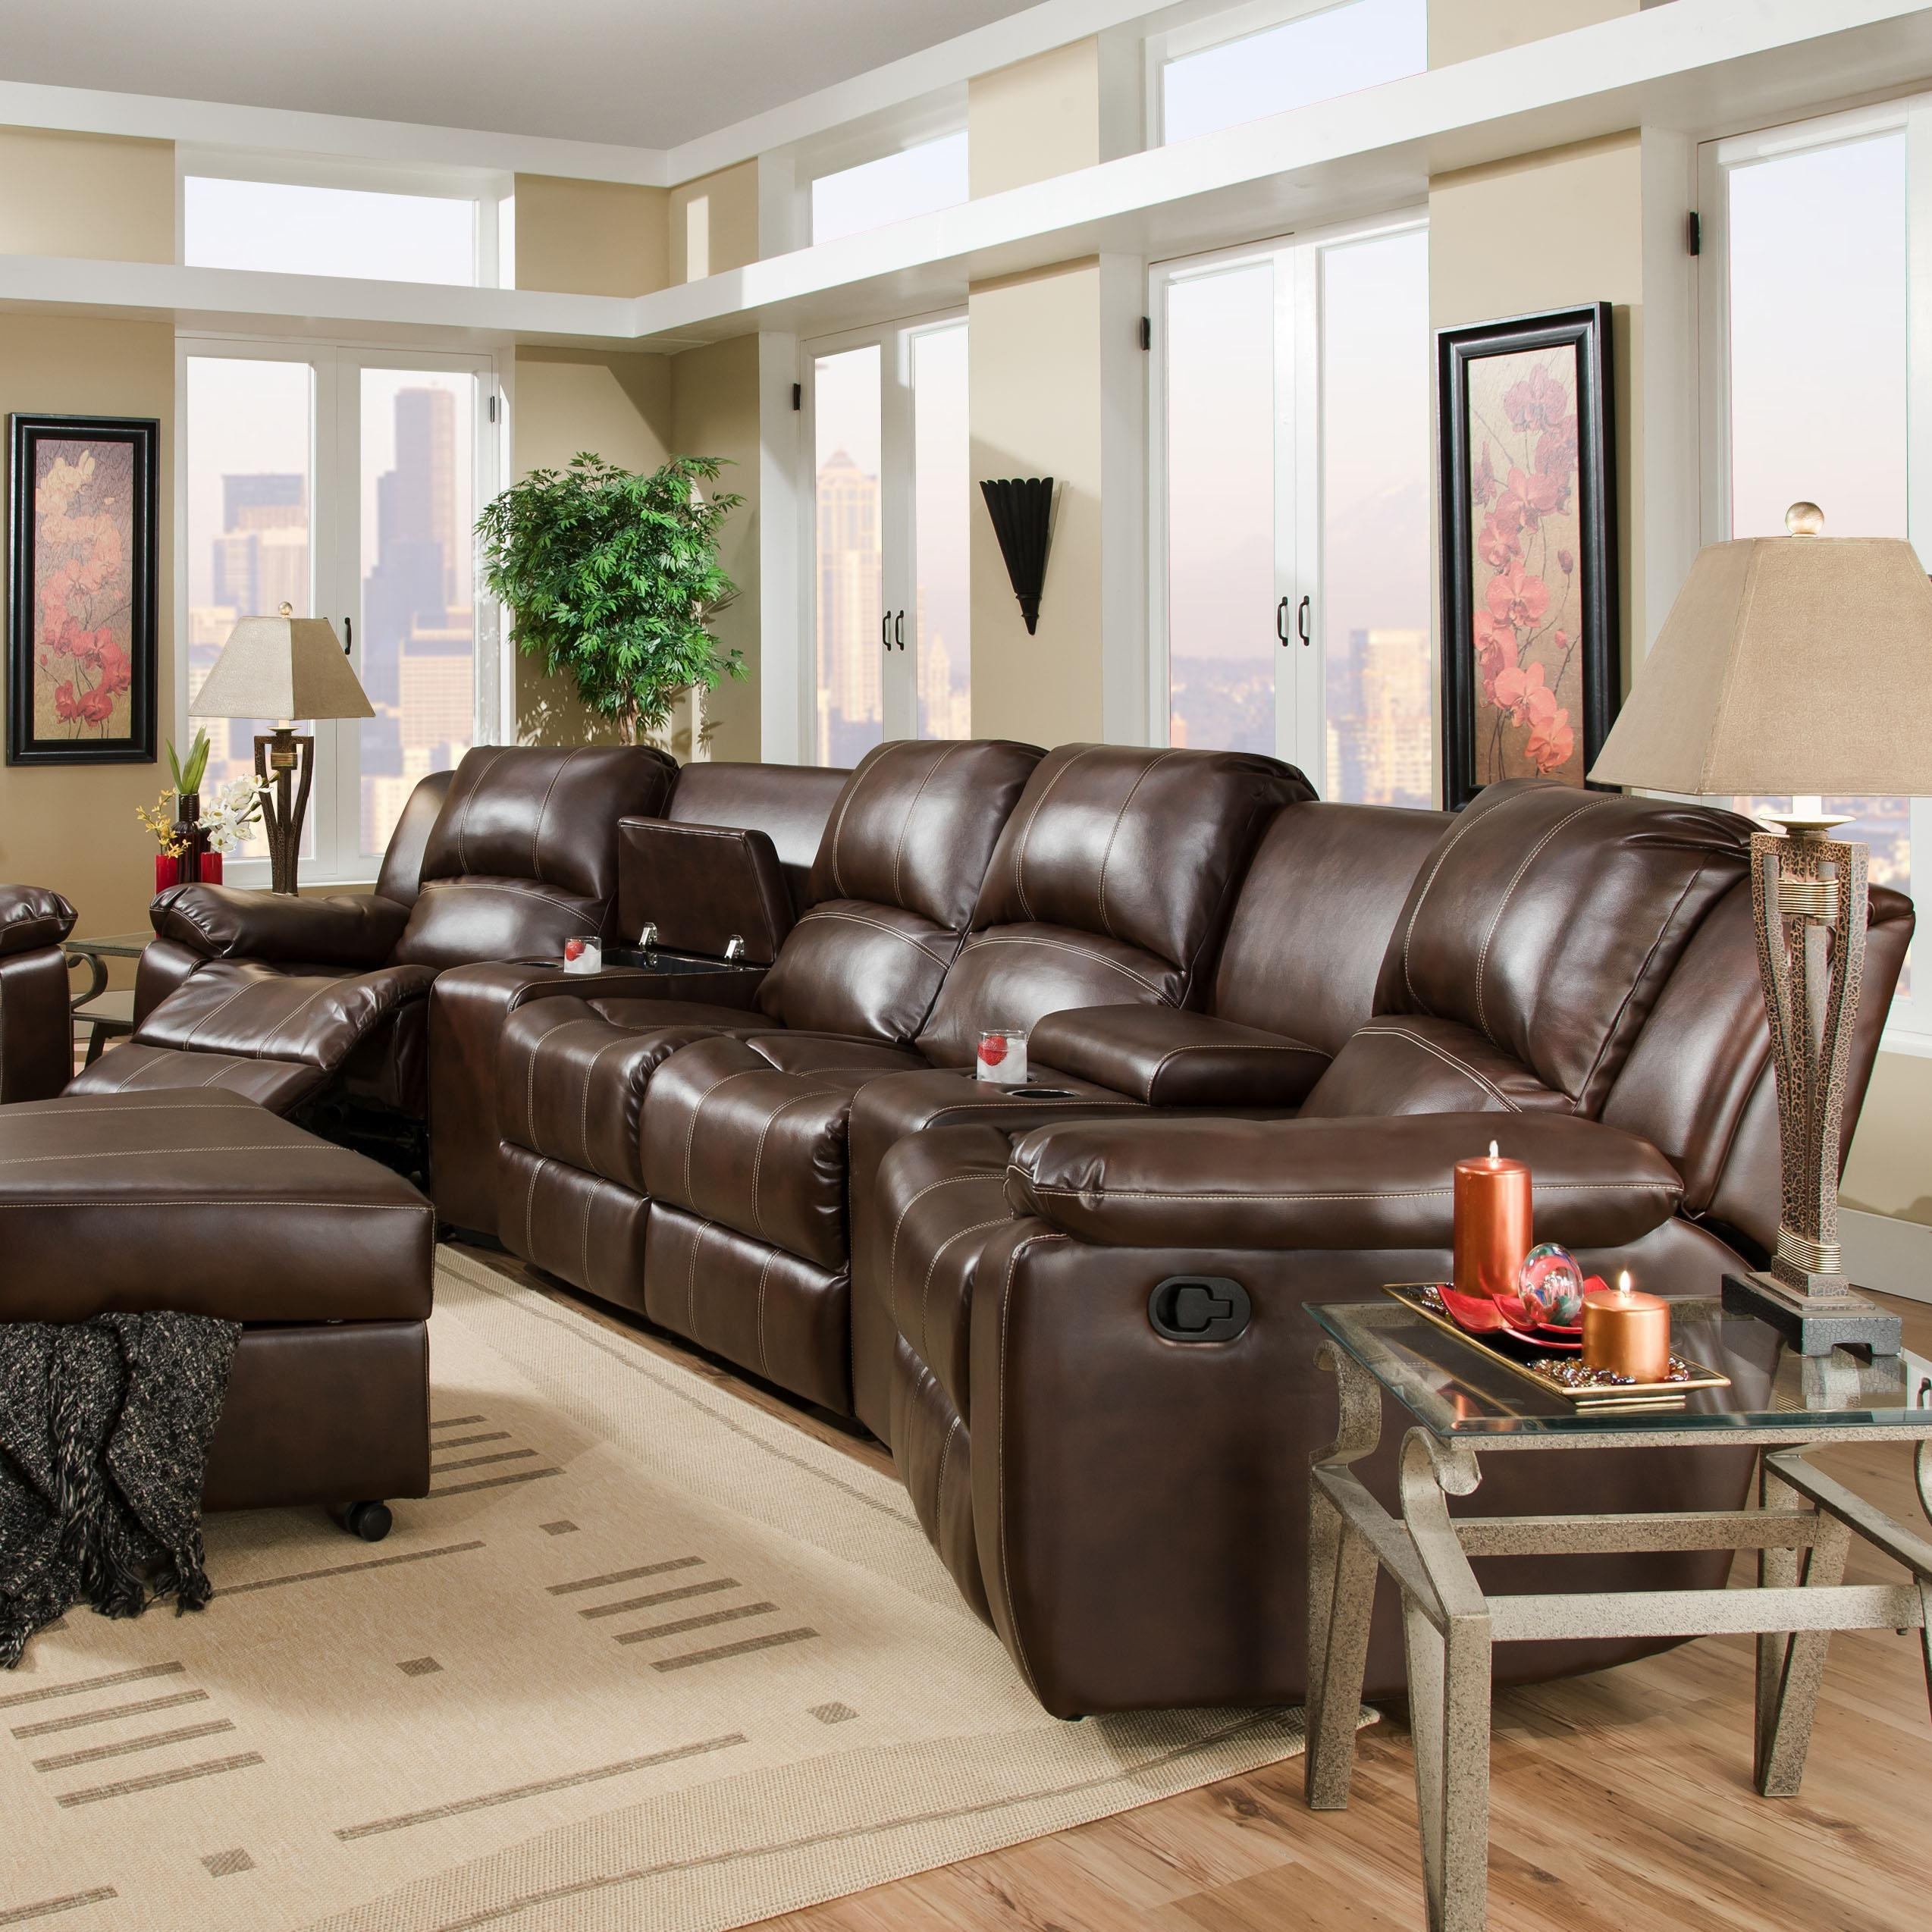 theater living room furniture small bedroom ideas brady reclining seating with center loveseat belfort